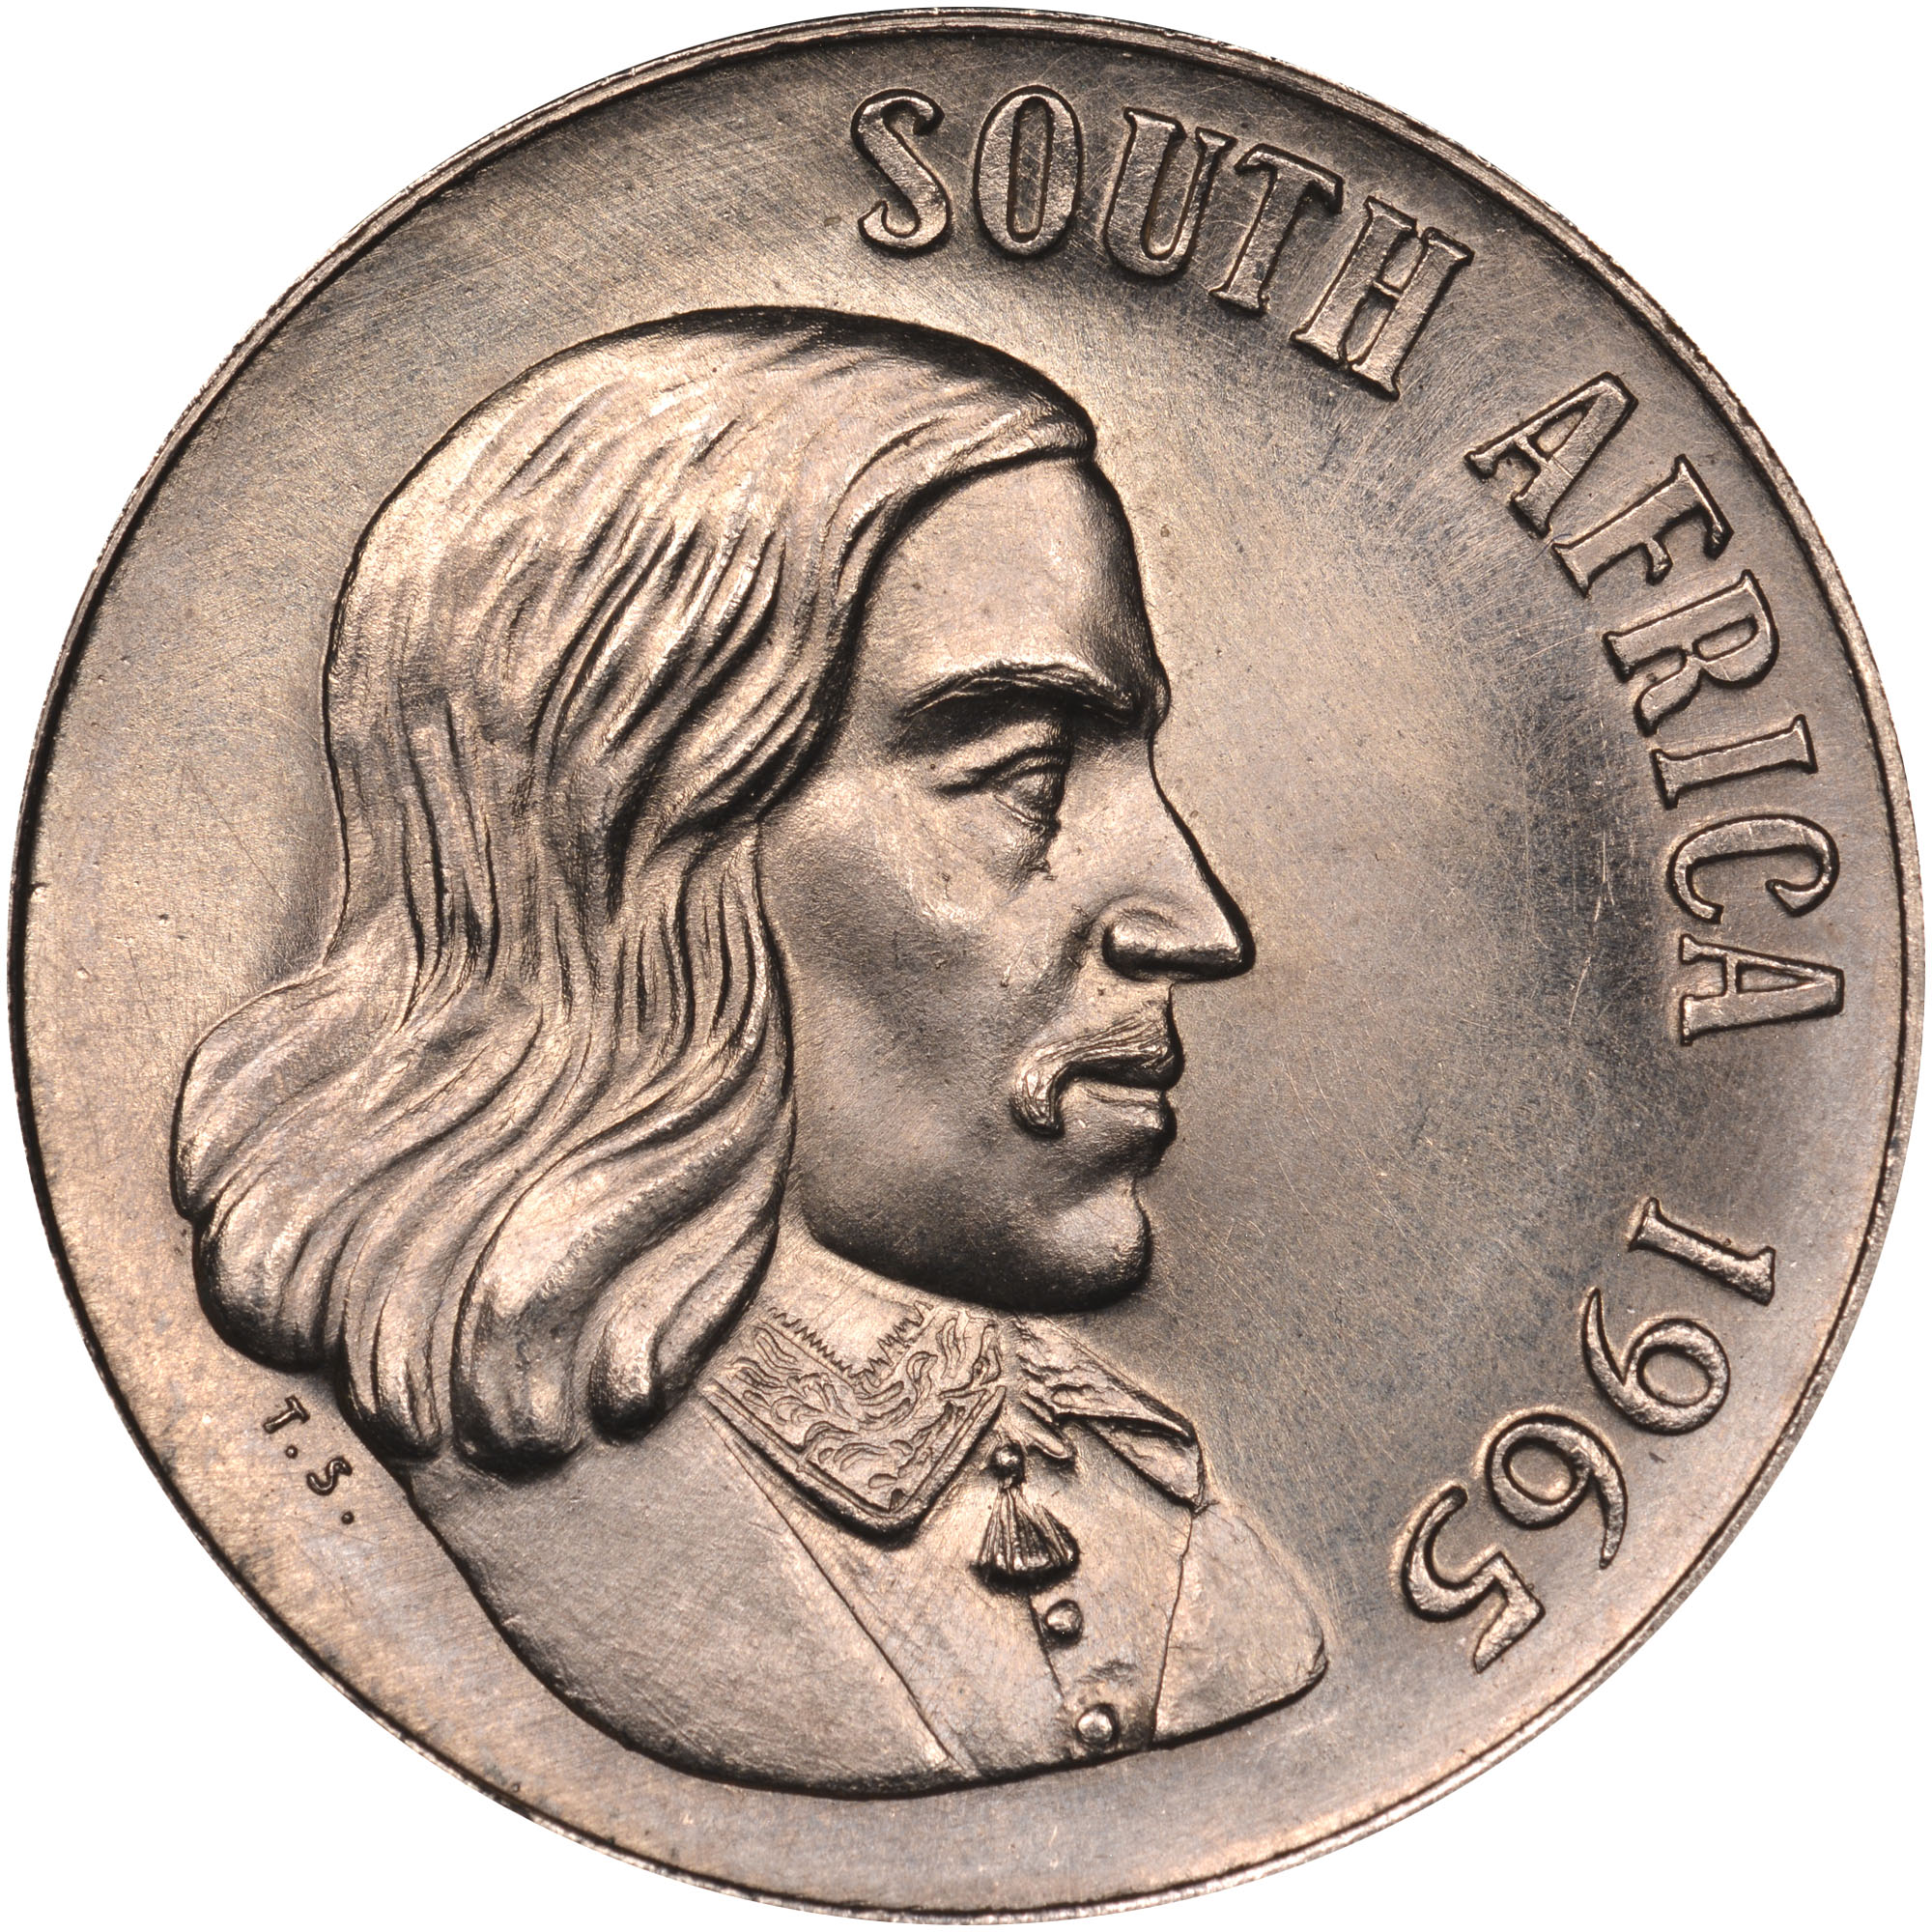 South Africa 20 Cents KM 69 1 Prices & Values | NGC